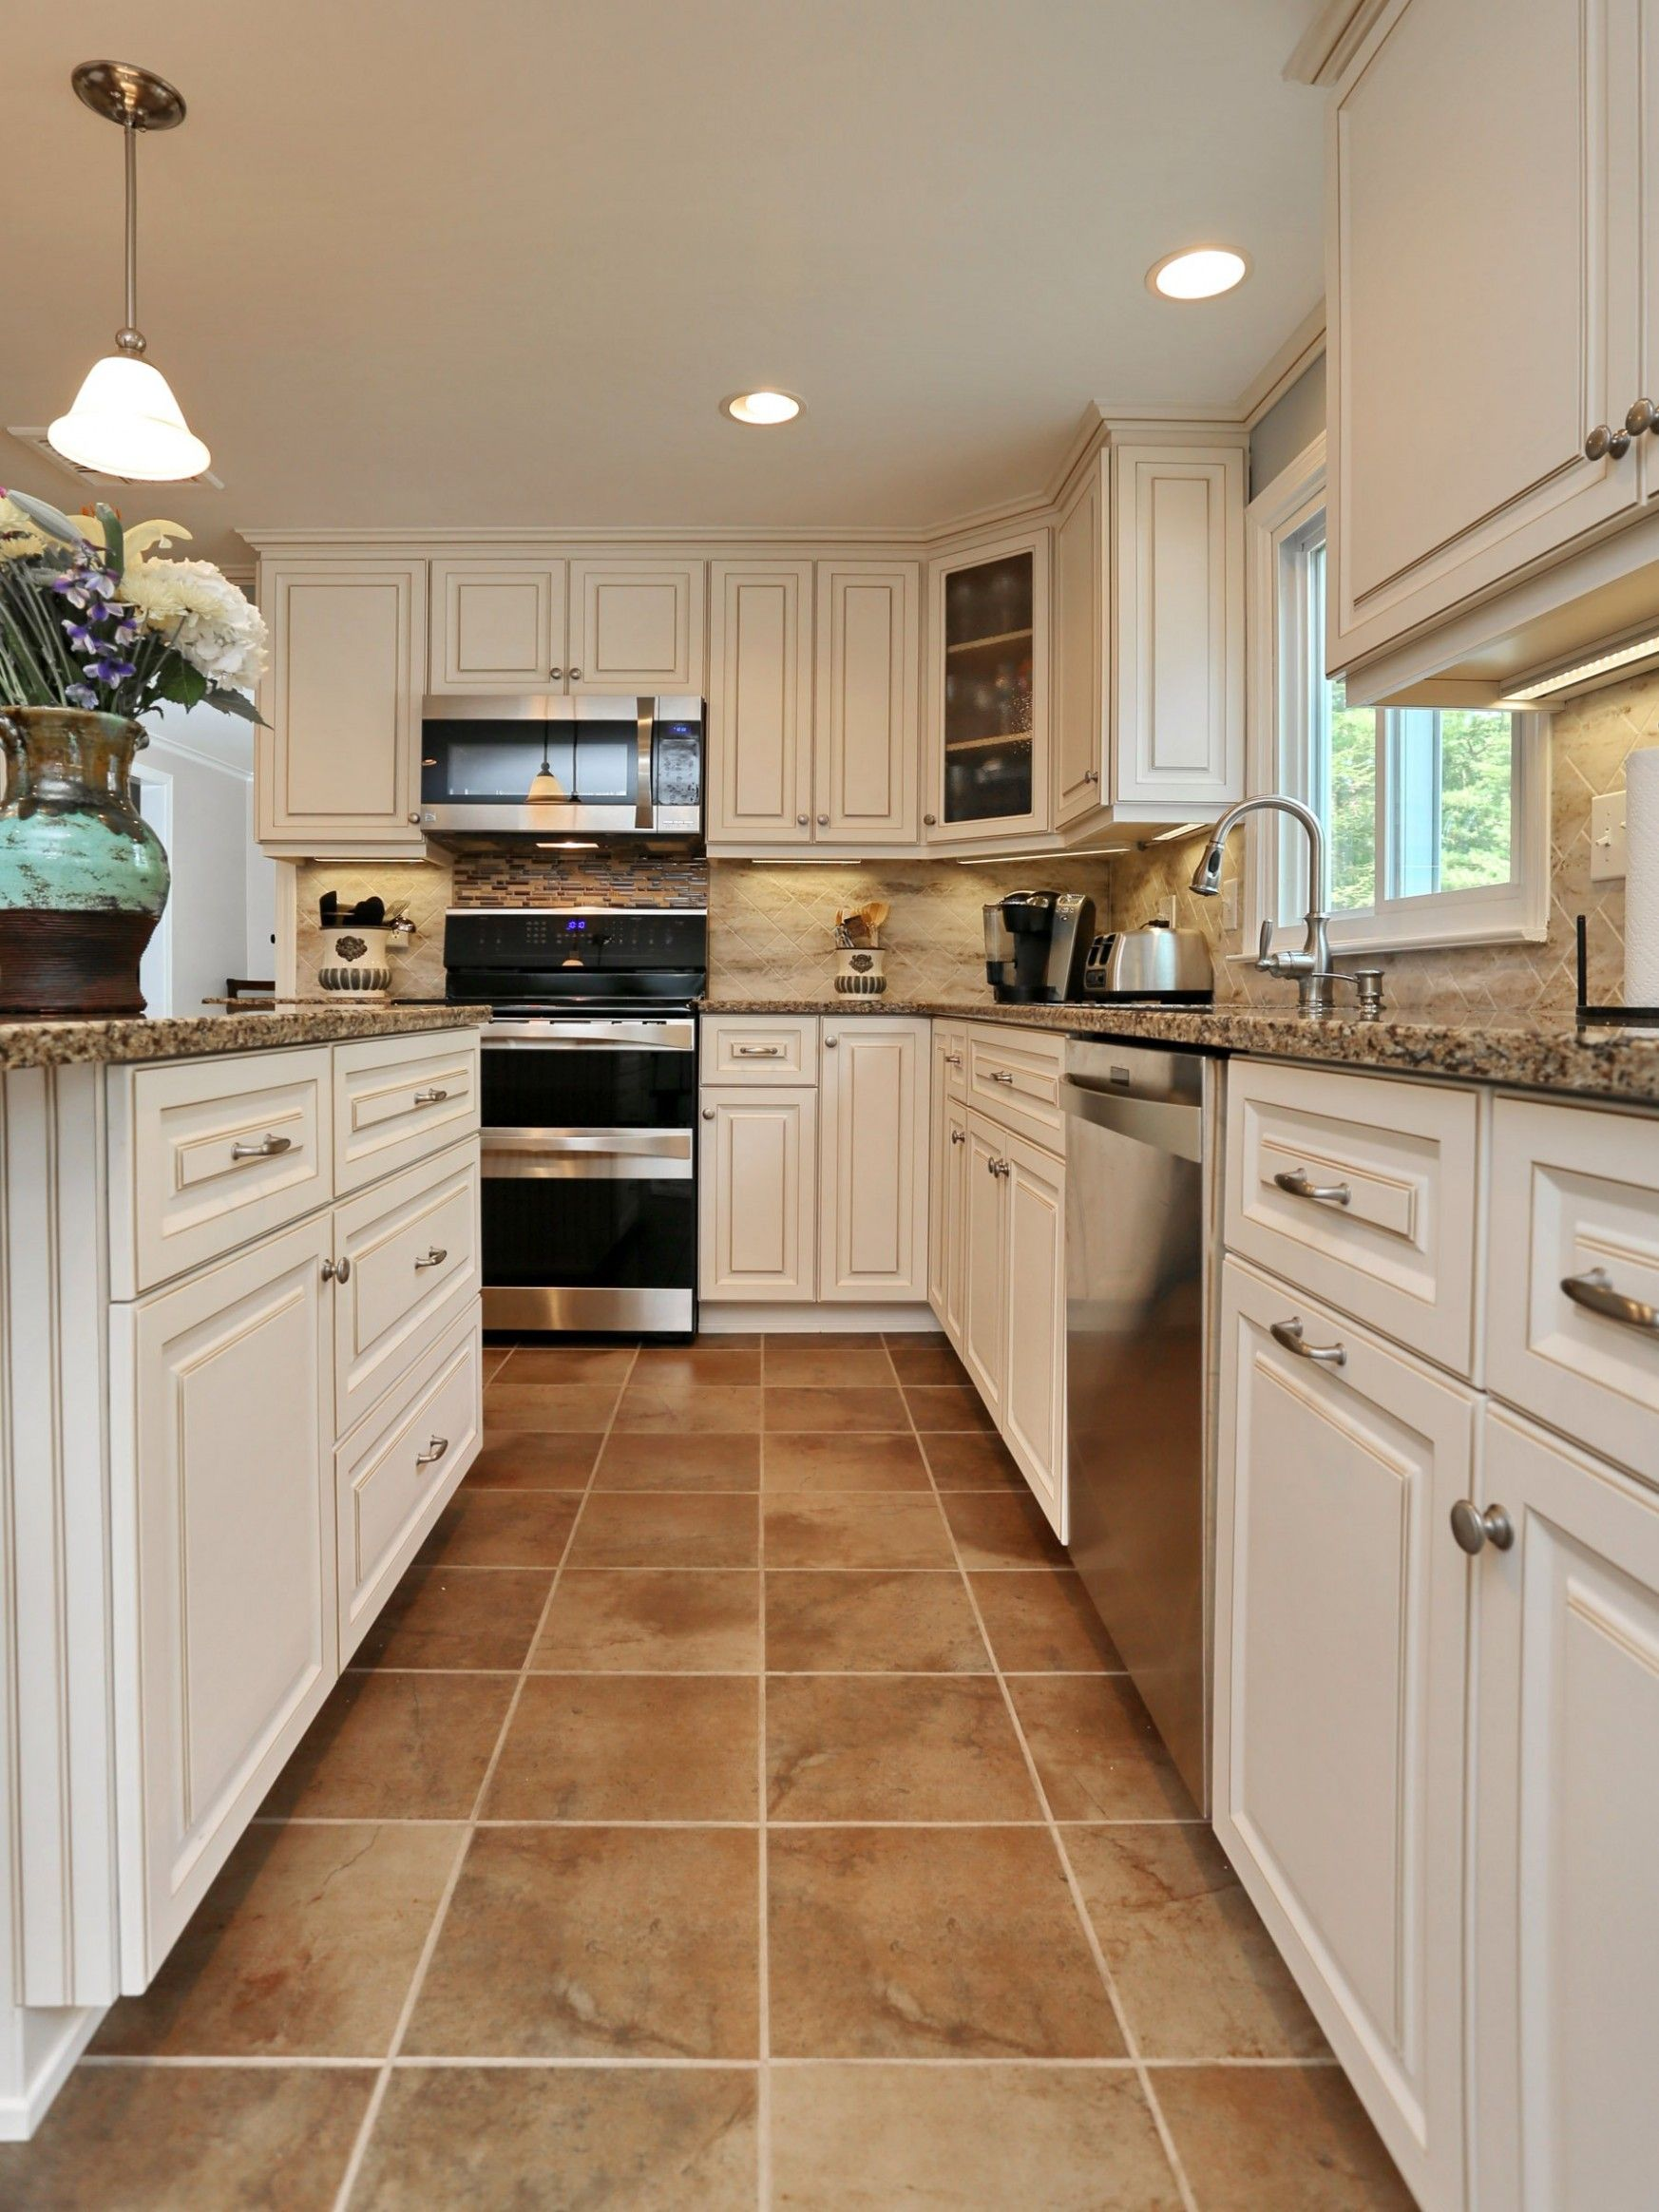 12 Outrageous Ideas For Your Kitchen Tile Floor Ideas With White Cabinets In 2020 Kitchen Floor Tile Kitchen Flooring Antique White Kitchen